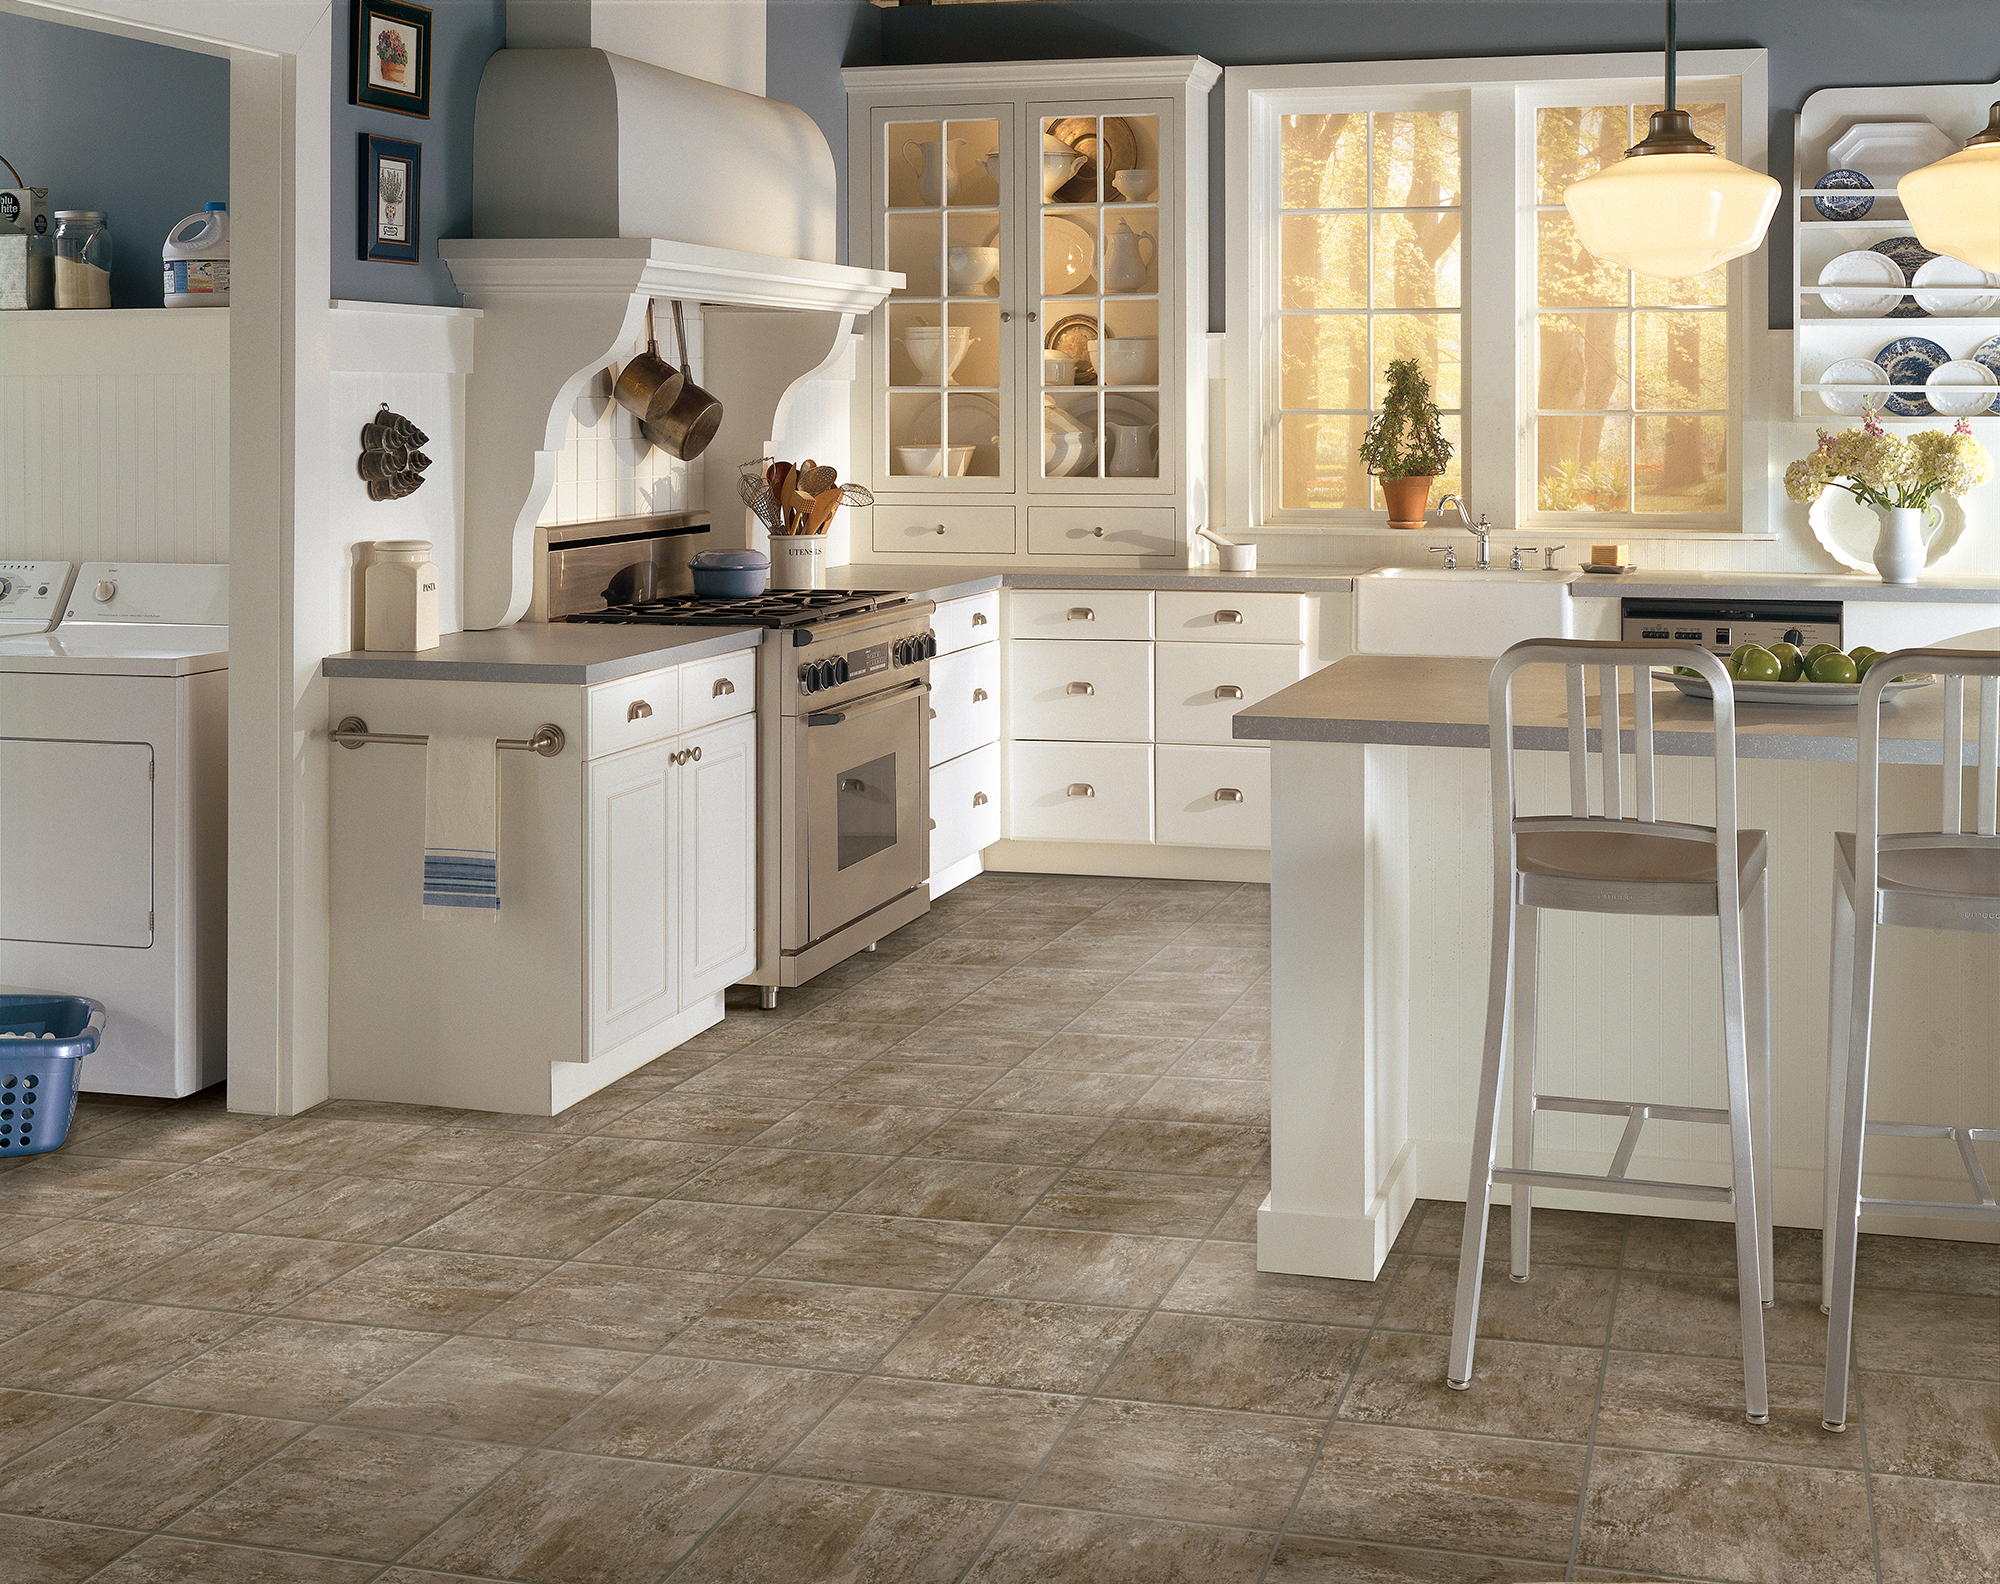 5 Flooring Options For Kitchens And